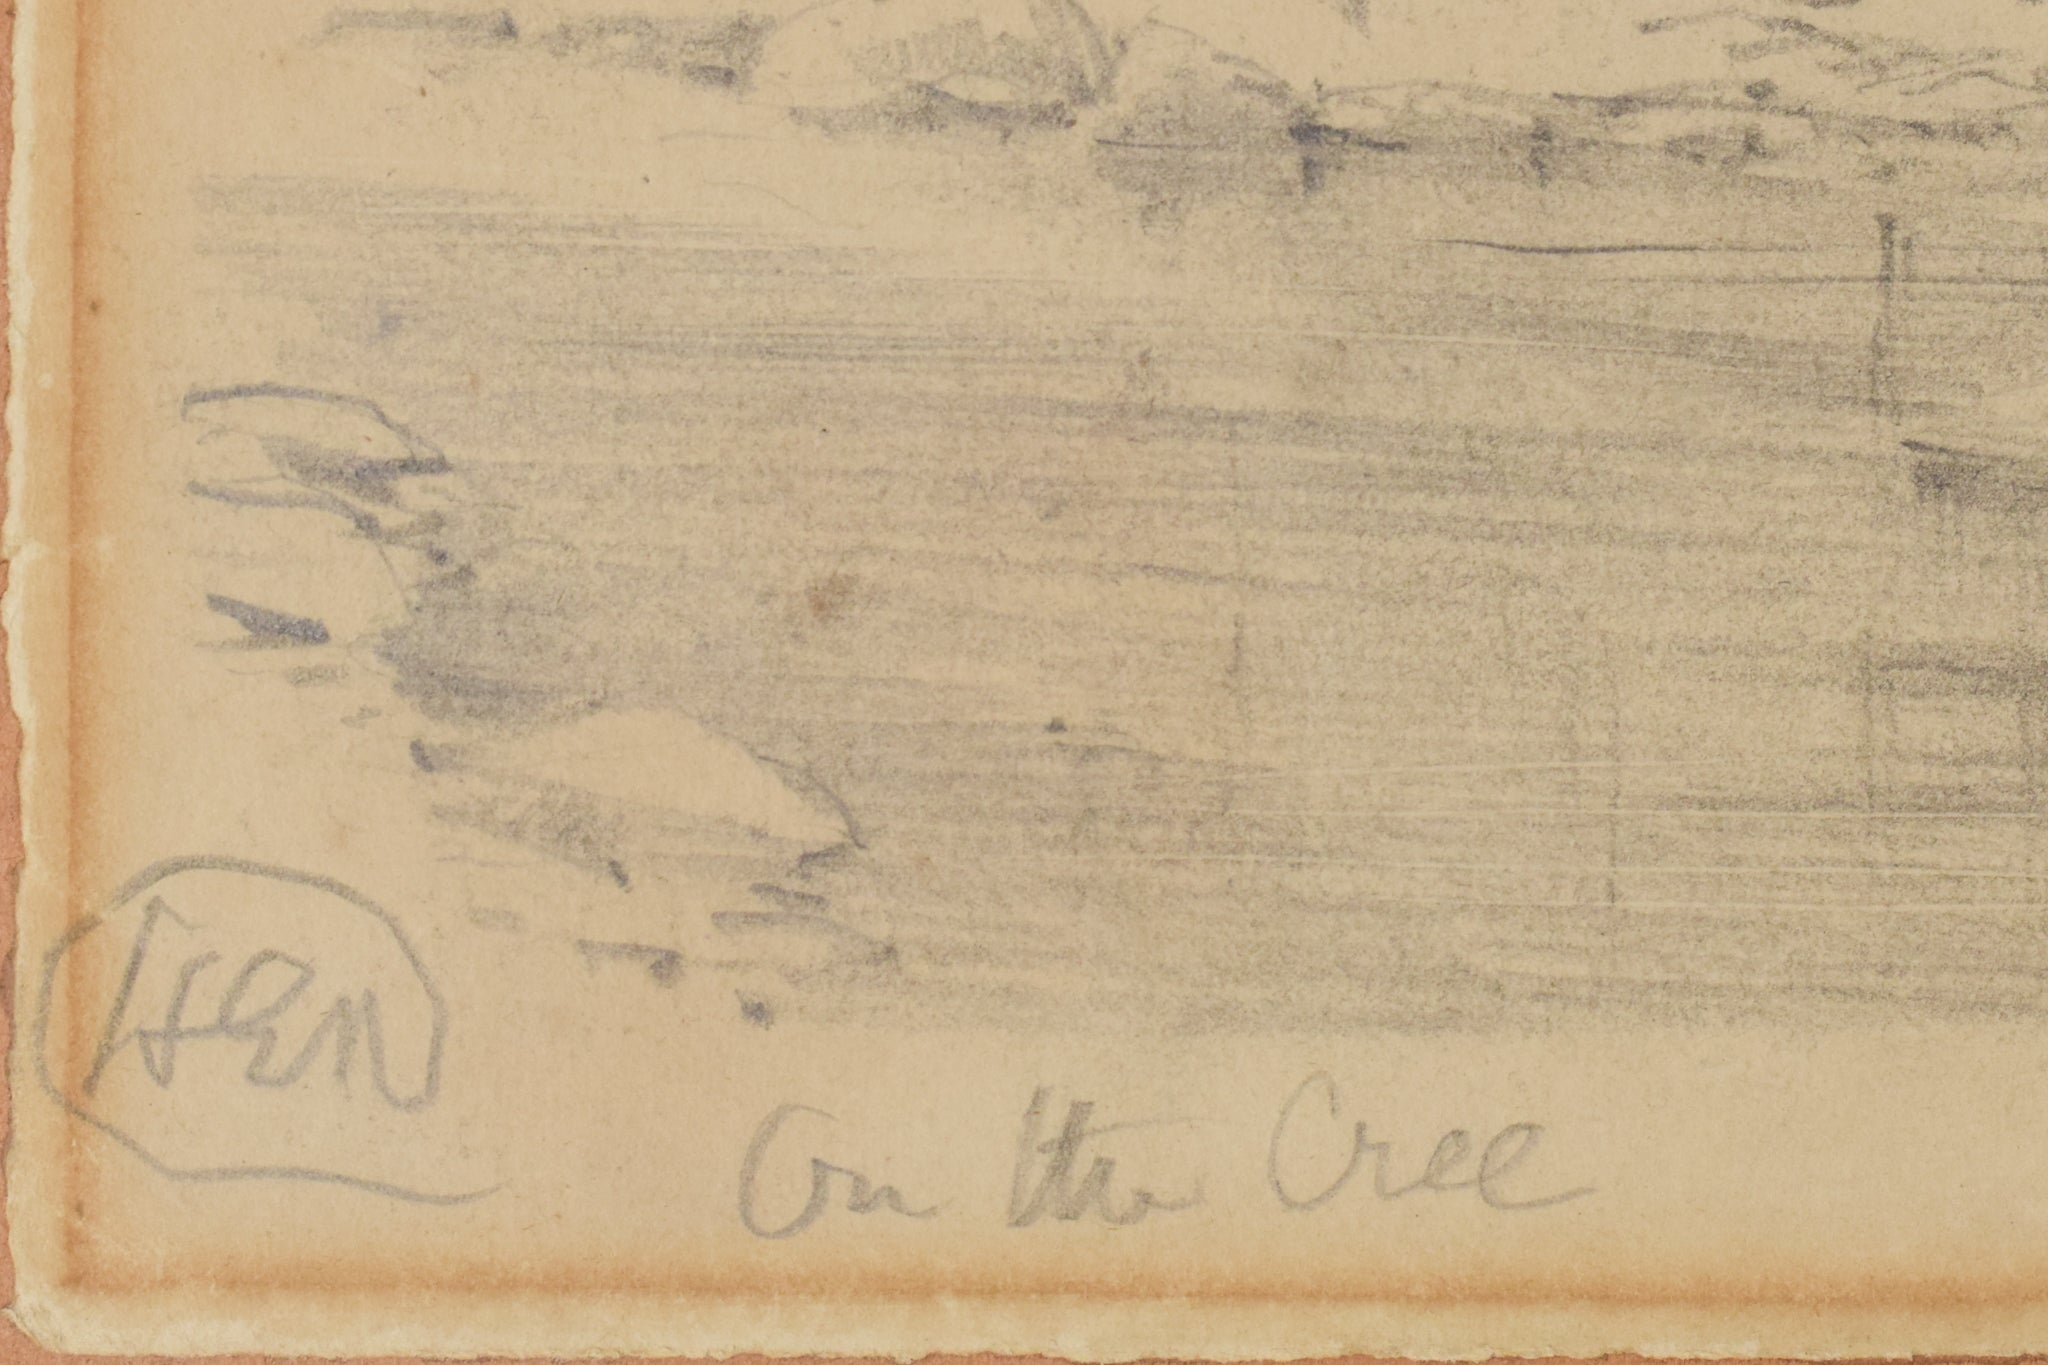 'On The Cree' Landscape Drawing of a River_Signature